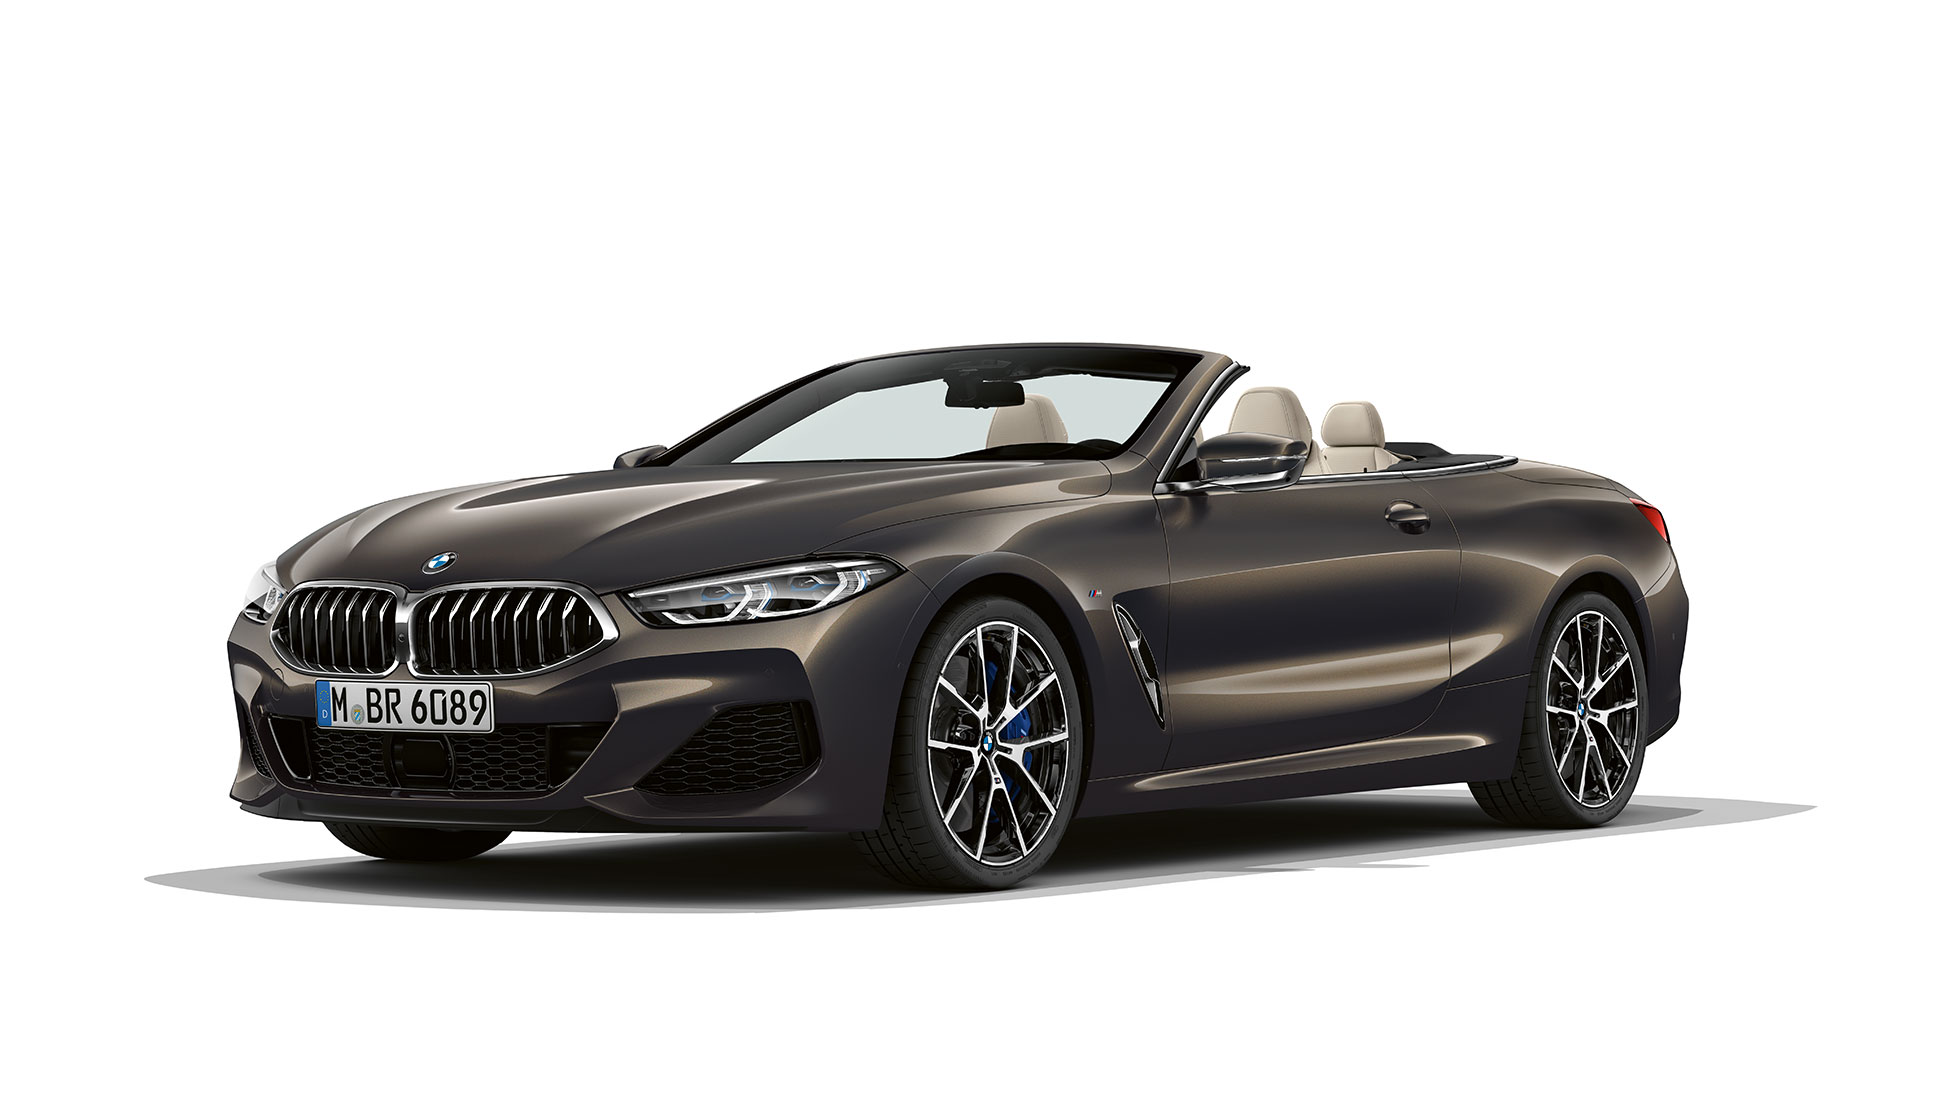 BMW M850i xDrive, Dravit Grey metallic, three-quarter view front.,BMW M850i xDrive, Dravit Grey metallic, three-quarter view front.